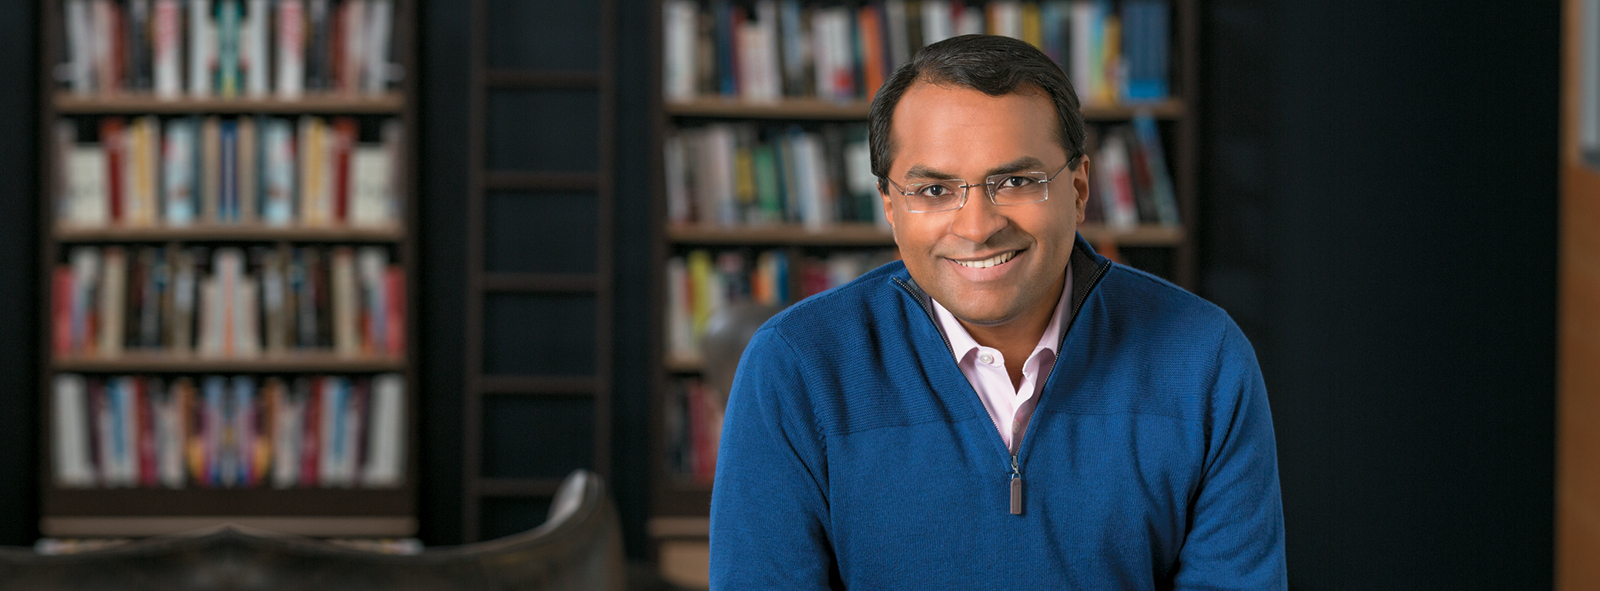 Select to access video of First Republic Venture Capital / Private Equity client(s) Ajay Royan